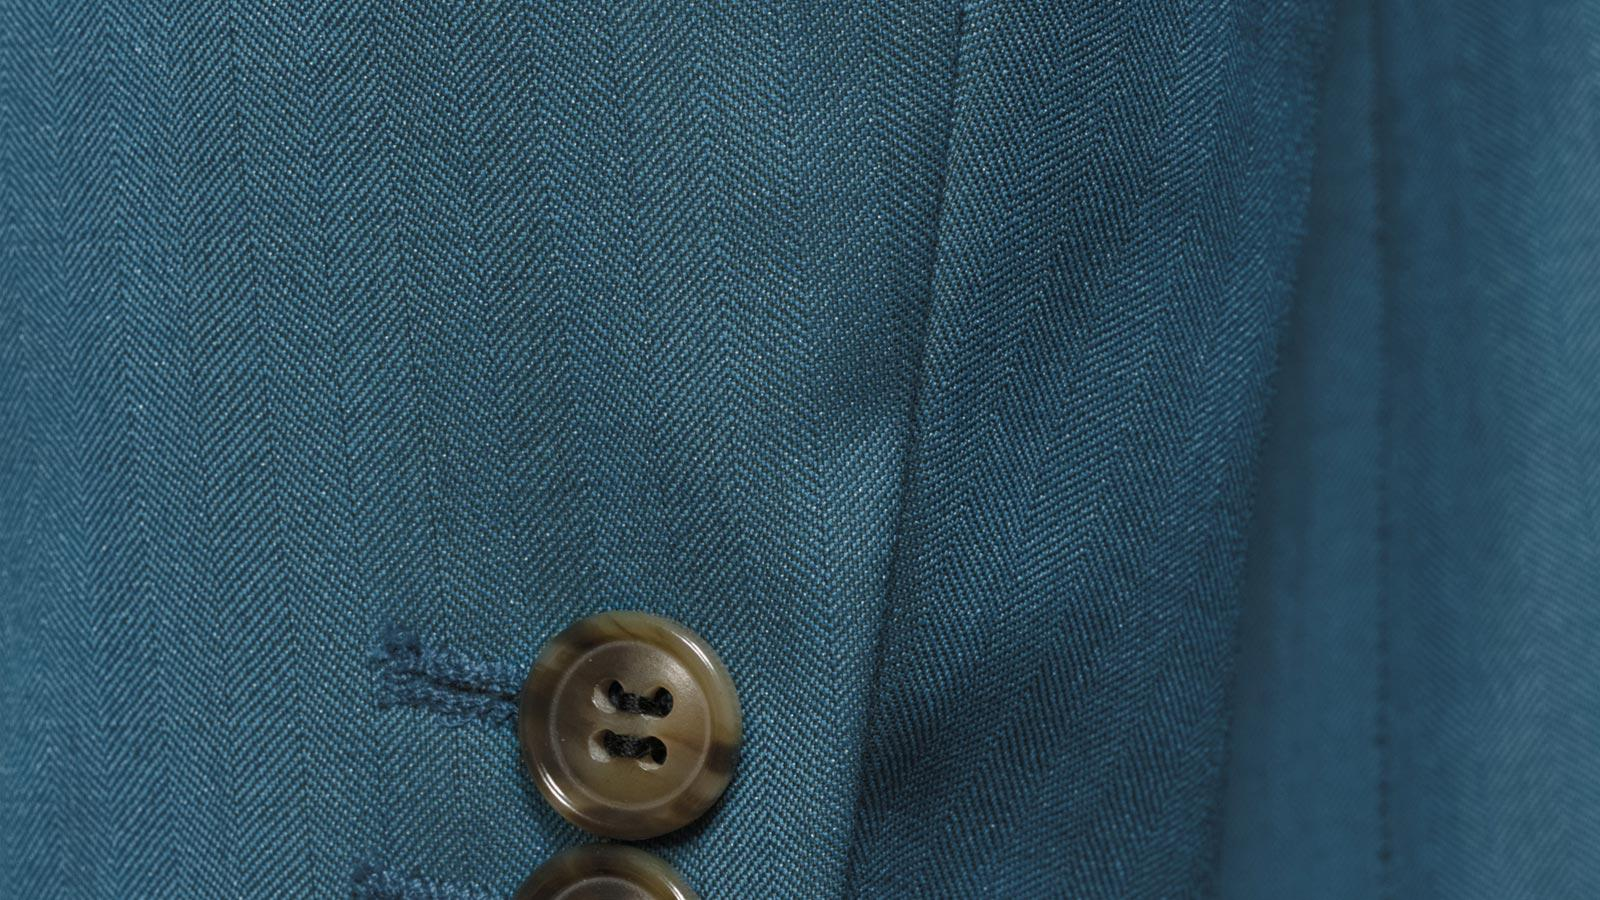 Teal Blue Wool & Silk Suit - slider image 1